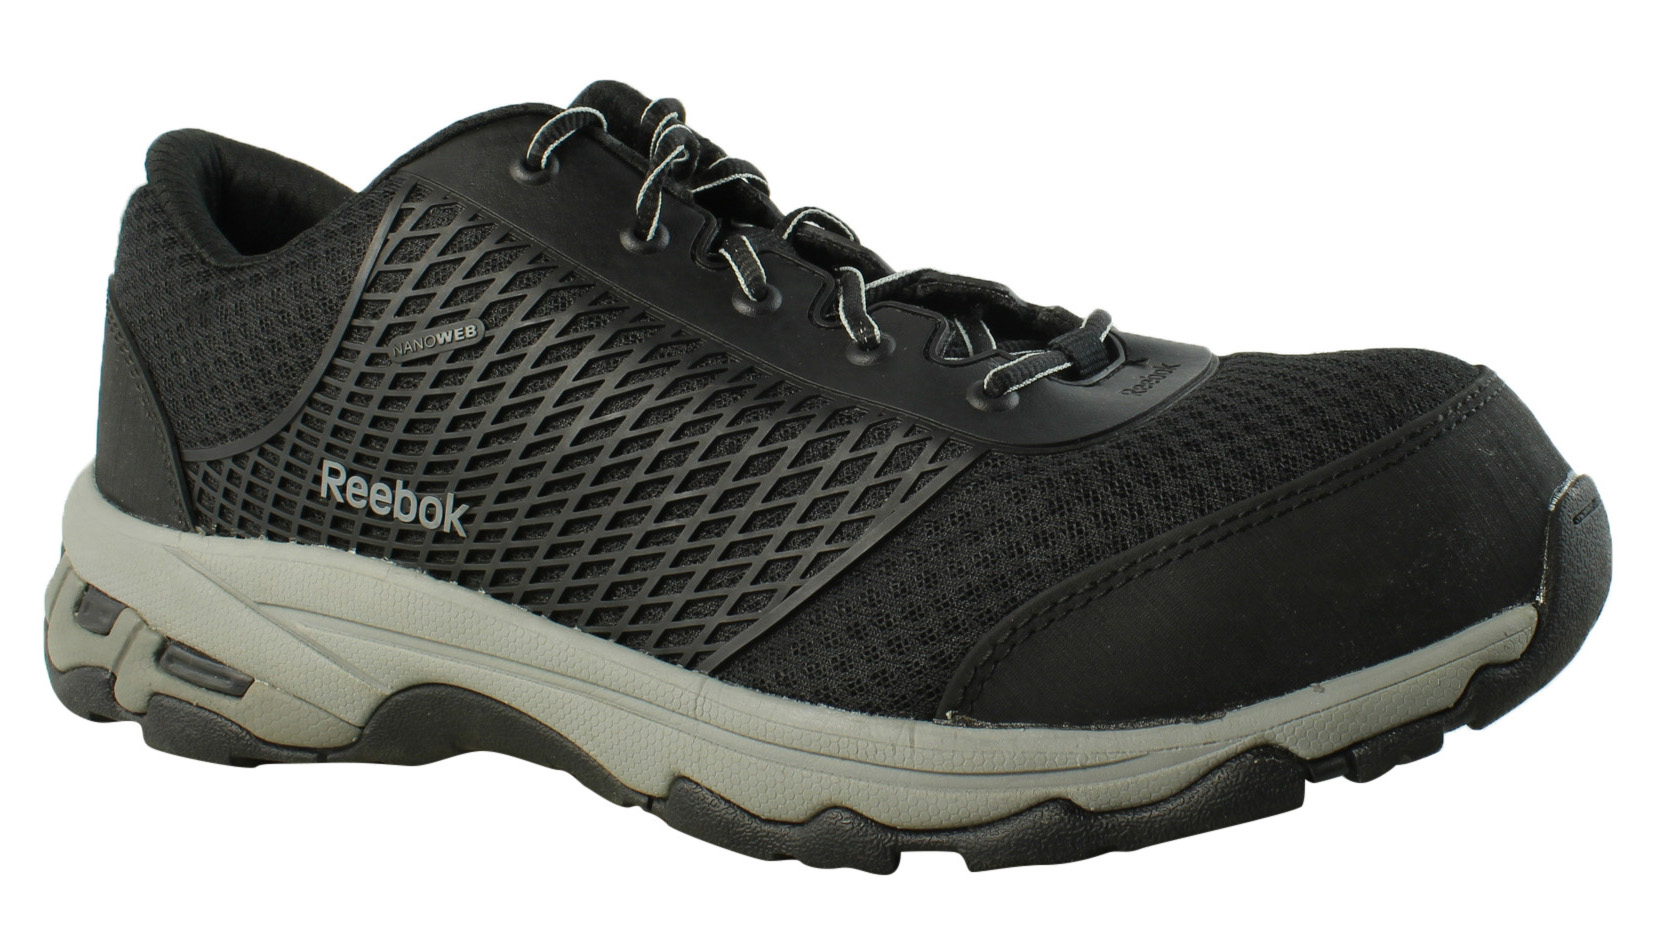 Image is loading Reebok-Mens-R14070220-Tan-Safety-Shoes-Size-12- a5bb104c9